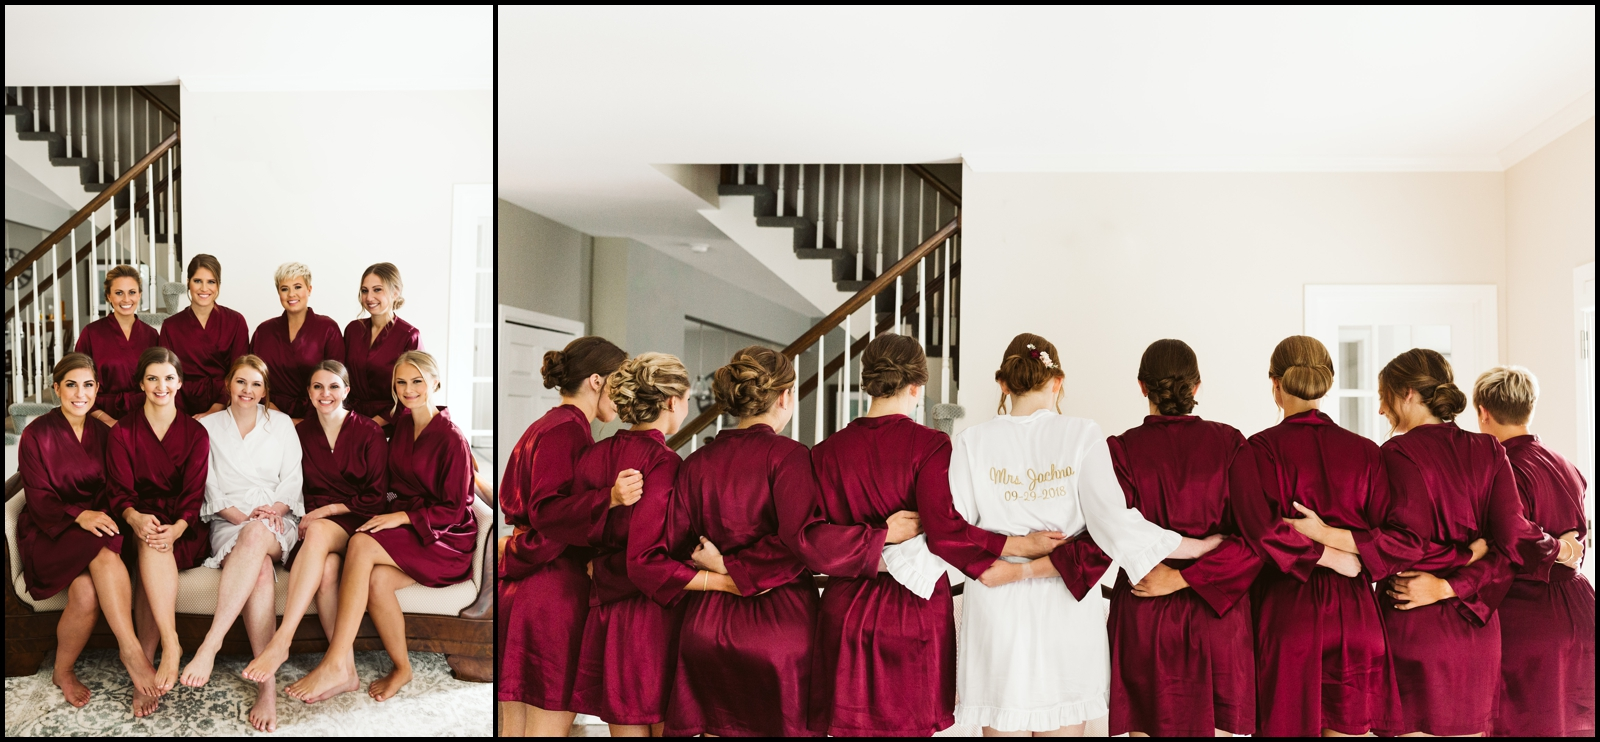 Bridesmaids and bride with robes